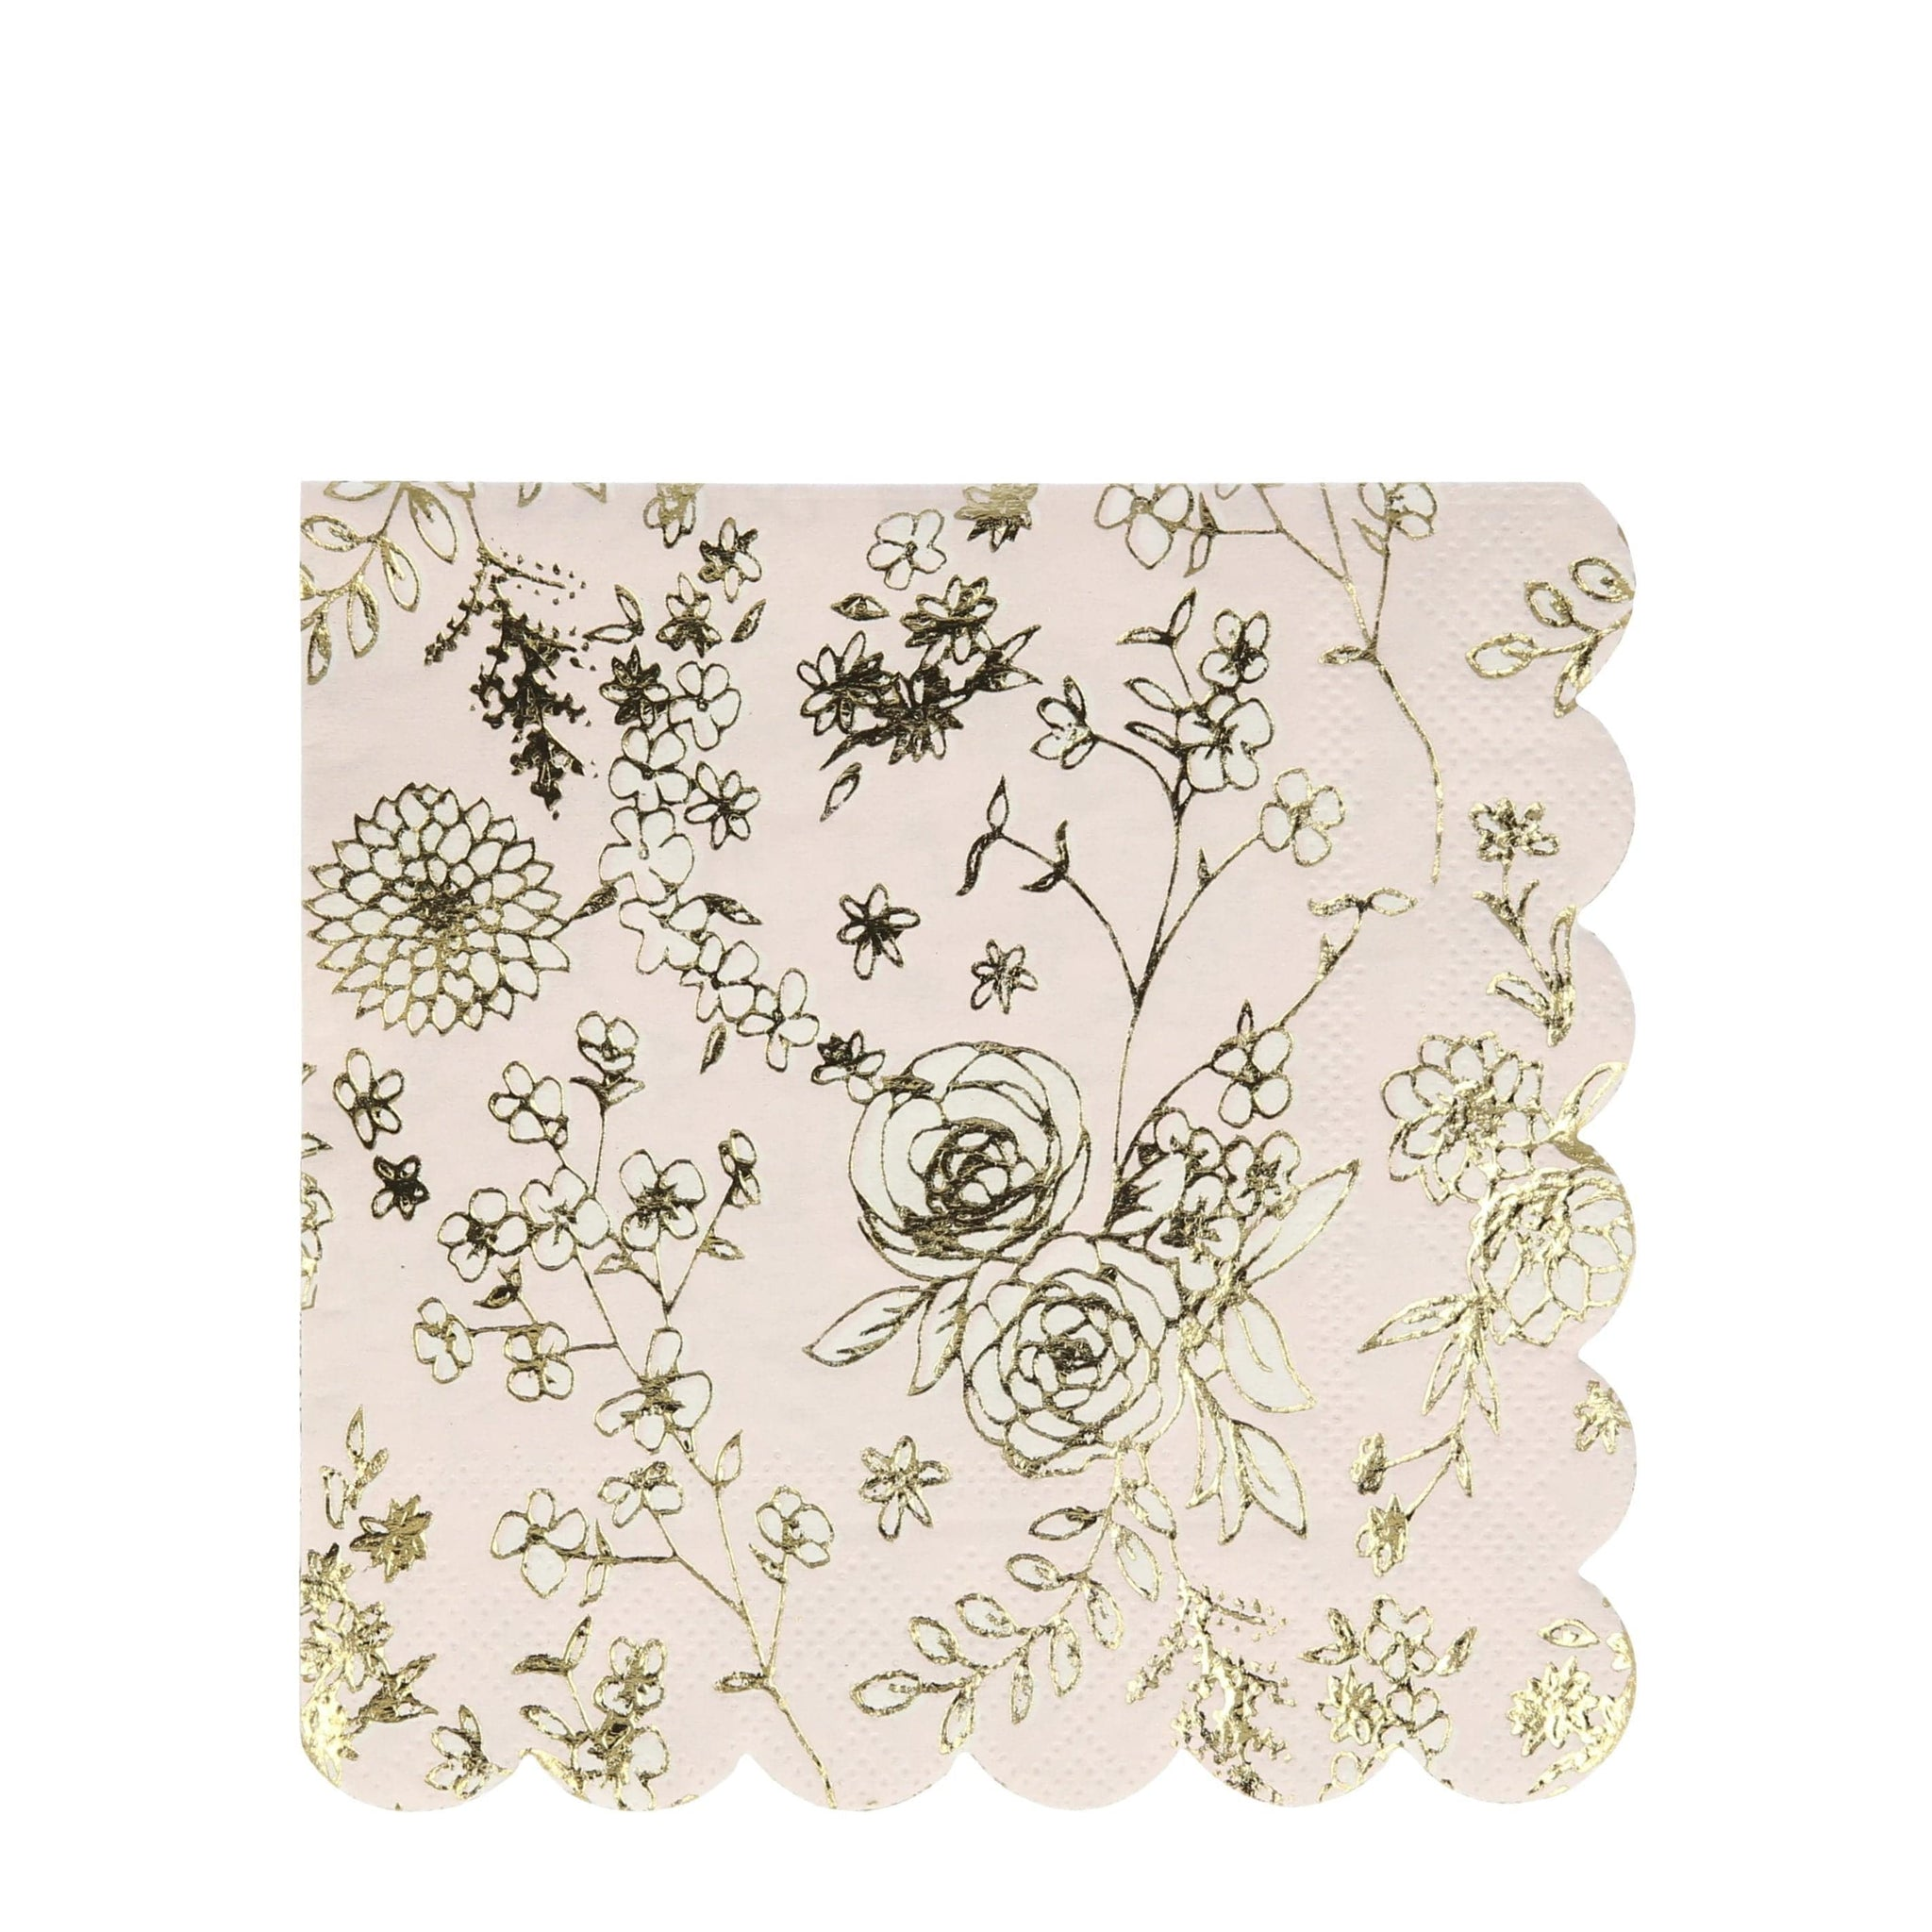 Garden Party Napkins | Floral Napkins Meri Meri UK